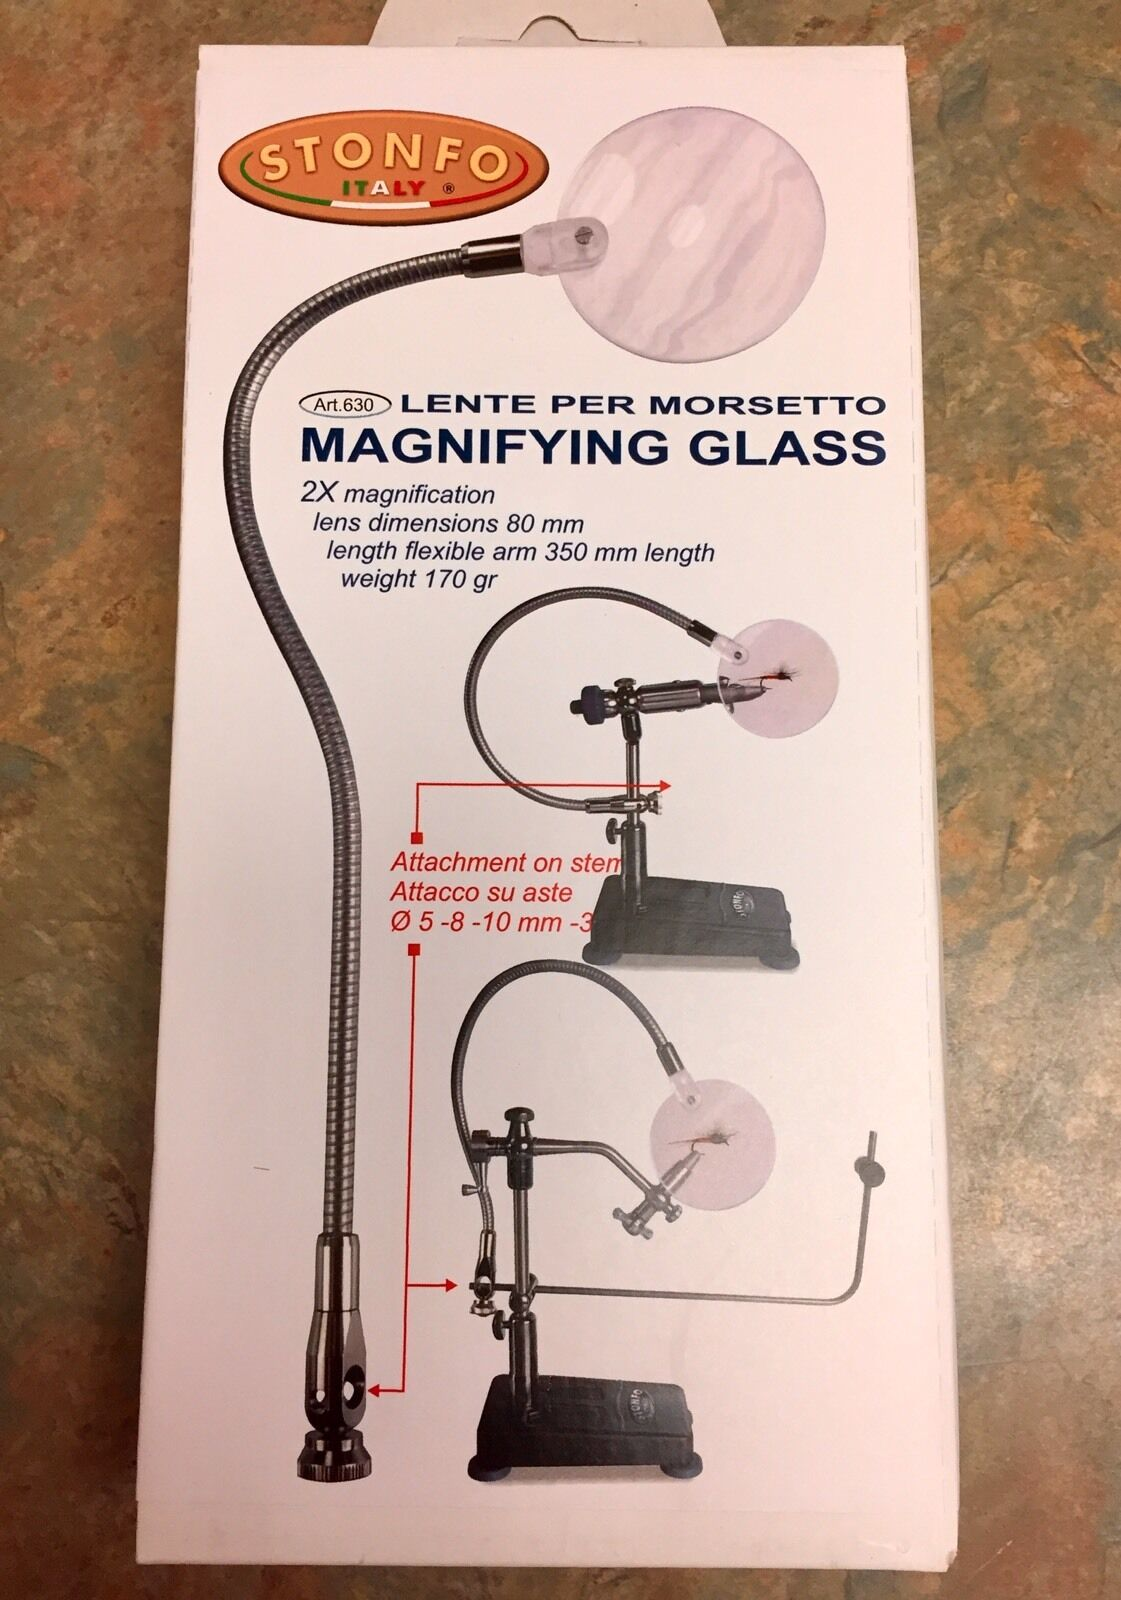 STONFO MAGNIFYING GLASS. FLEX ARM ATTACHES TO VISE STEM. FLY TYING TOOL. NEW